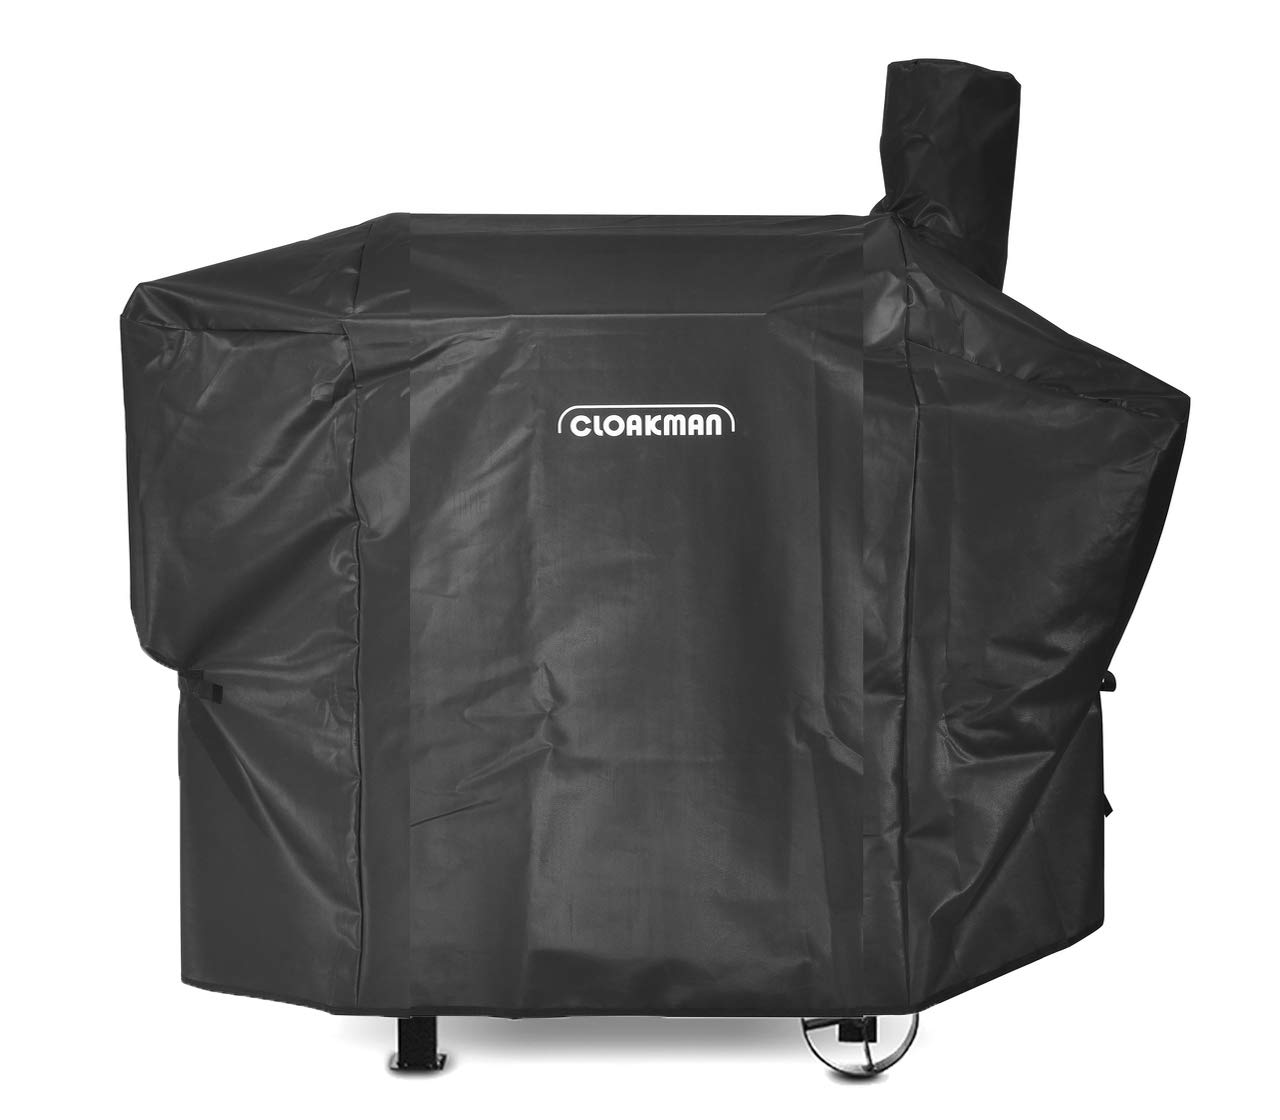 Cloakman Premium Heavy-Duty Grill Cover for Pit Boss 820D/820SC 820 Pro Deluxe Wood Pellet Grill with The Side Tray by Cloakman